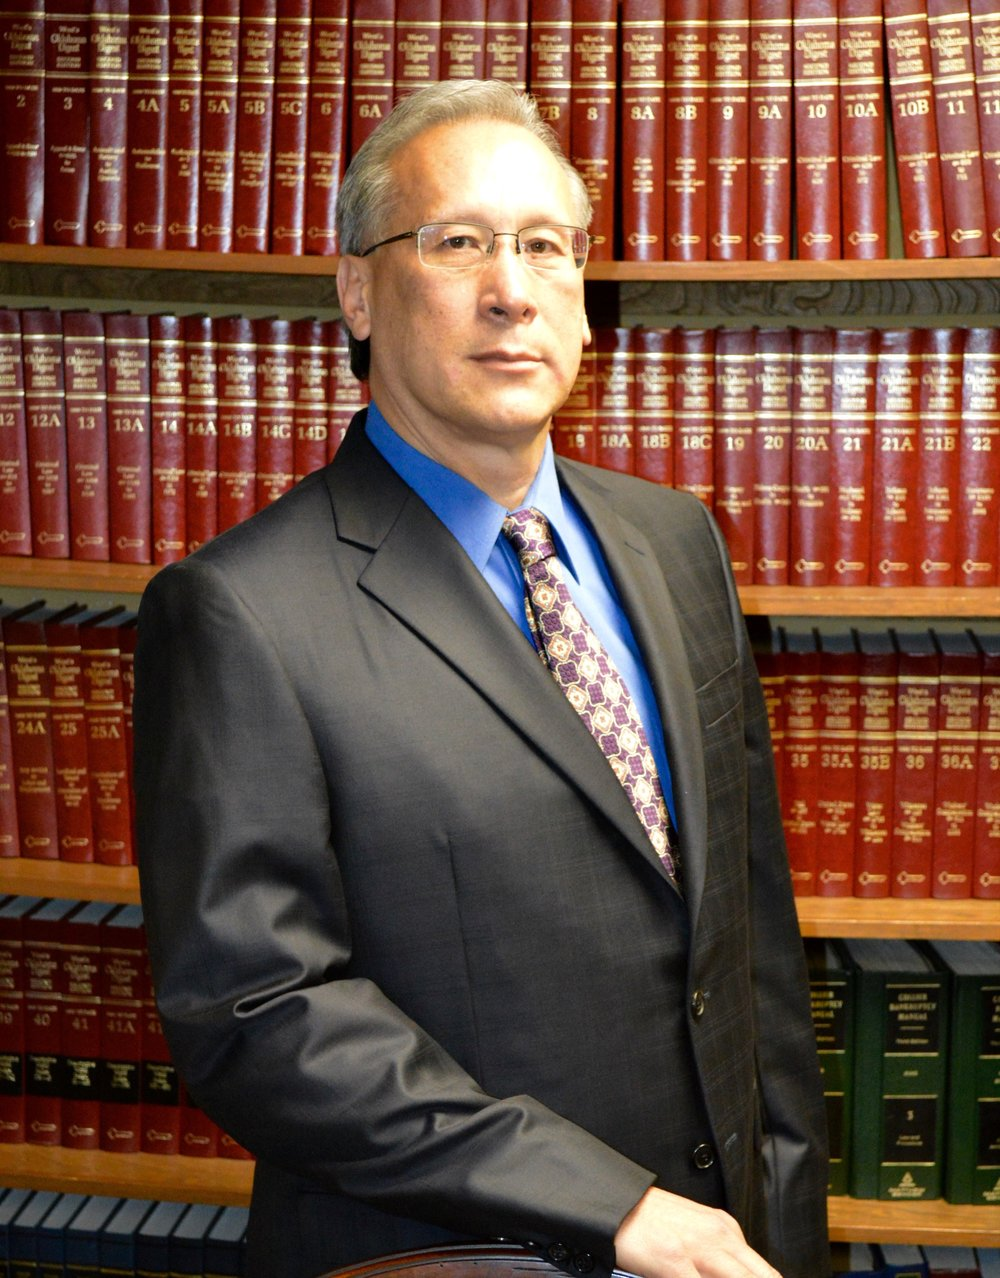 altus lawyer  lawton lawyer  magnum lawyer  oklahoma lawyer  ok lawyer  attorney  altus attorney  lawton attorney  magnum attorney  oklahoma attorney  ok attorney  personal injury  corporations attorney  LLC  power of attorney  oklahoma wills  estates  divorce law  divorce attorney oklahoma  adoption lawyer  guardianships  custody  contract lawyer  title opinions  closings  business litigation  land disputes  bankruptcy